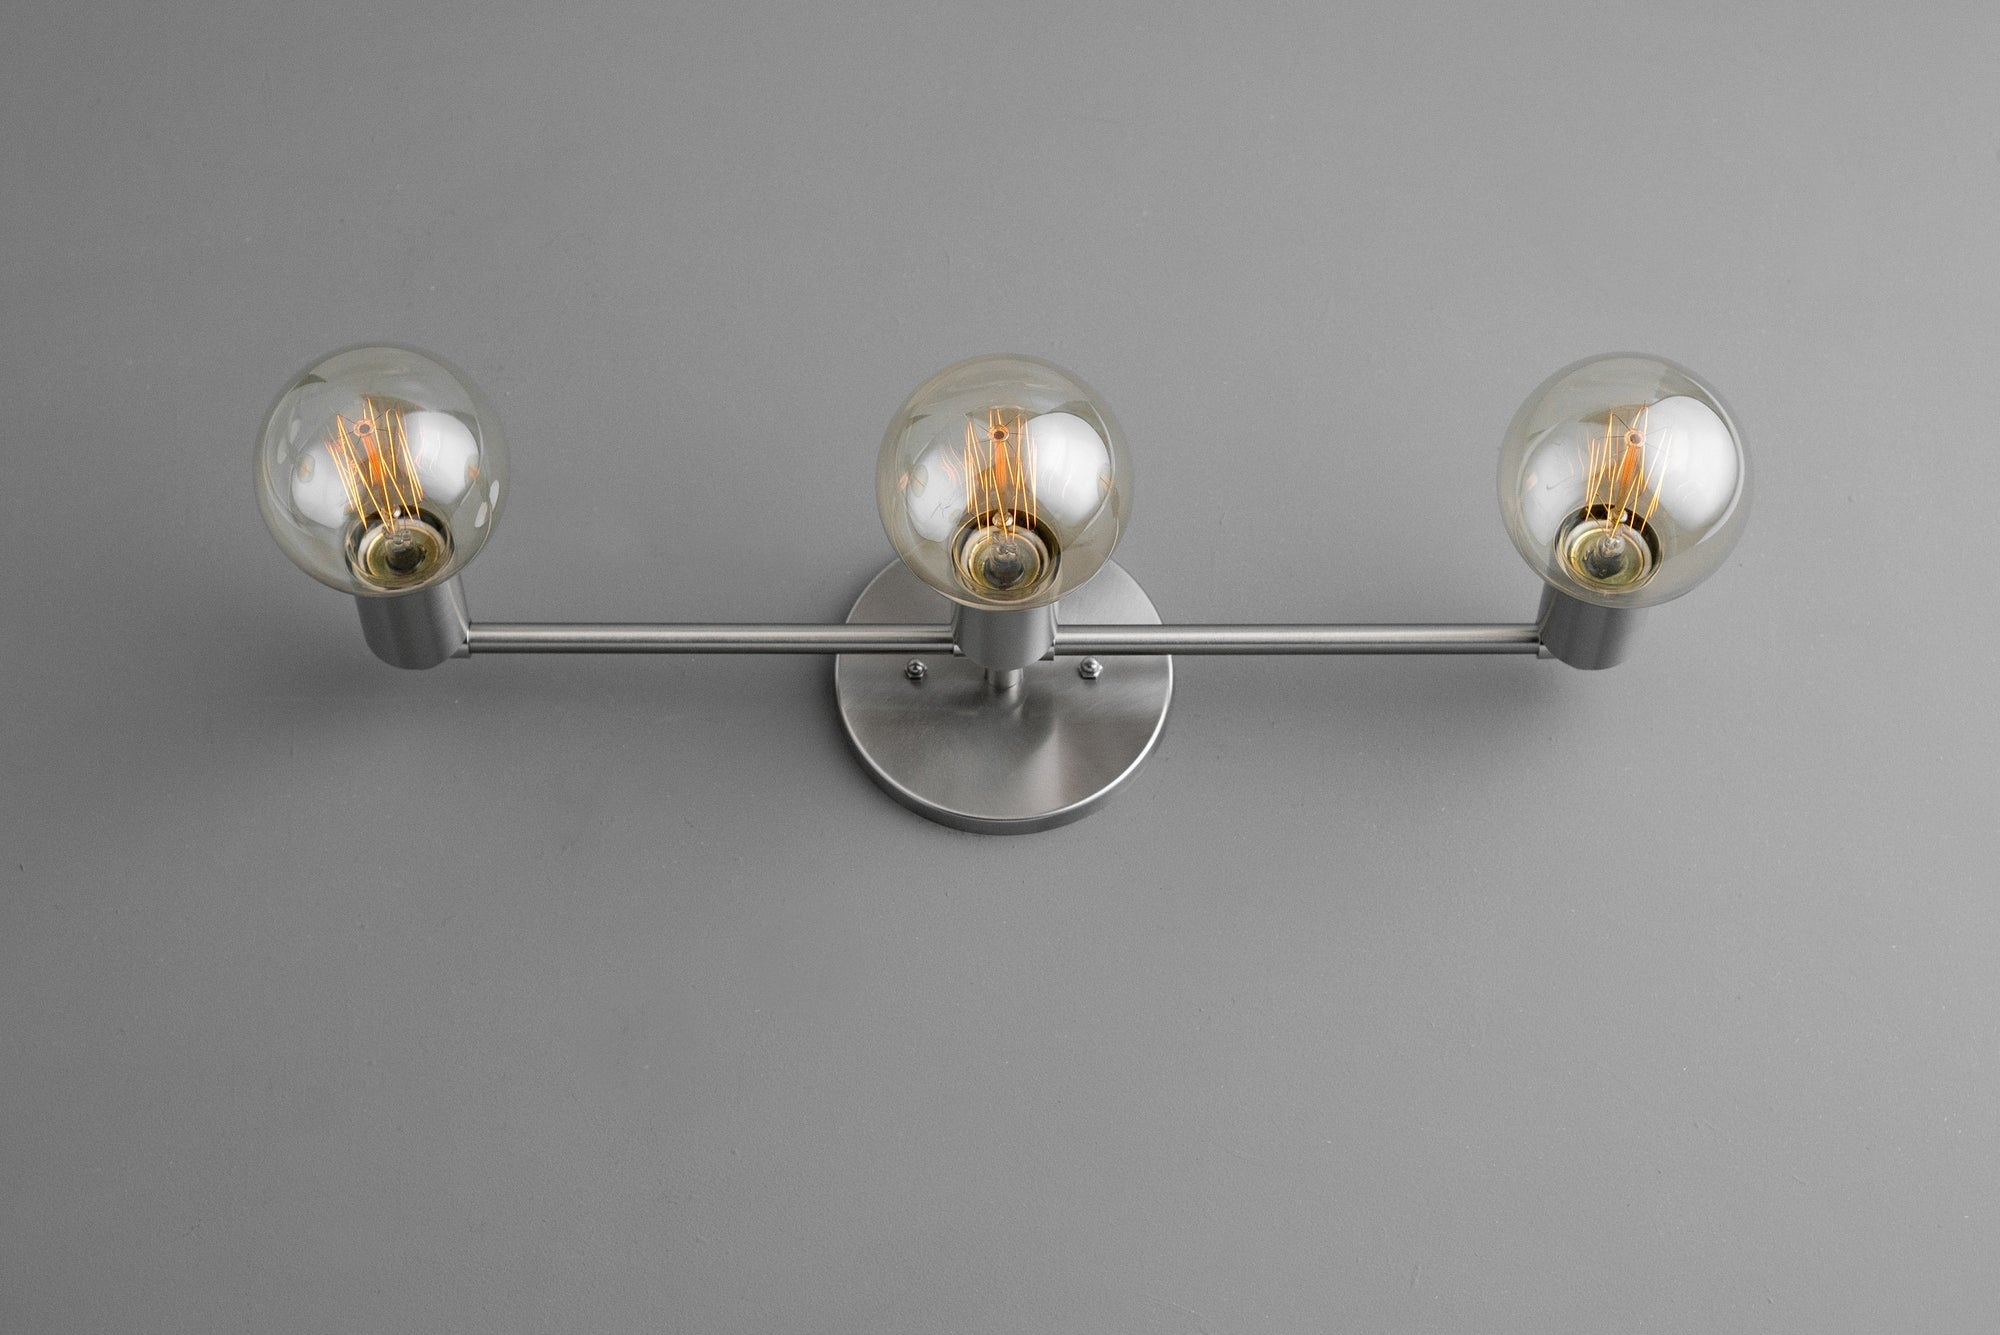 uk availability 466eb 802ce Three Bulb Vanity Light - Edison Bulb - Bare Bulb - Brushed Nickel -  Minimalist Vanity - Bathroom Light Fixture - Industrial Lighting